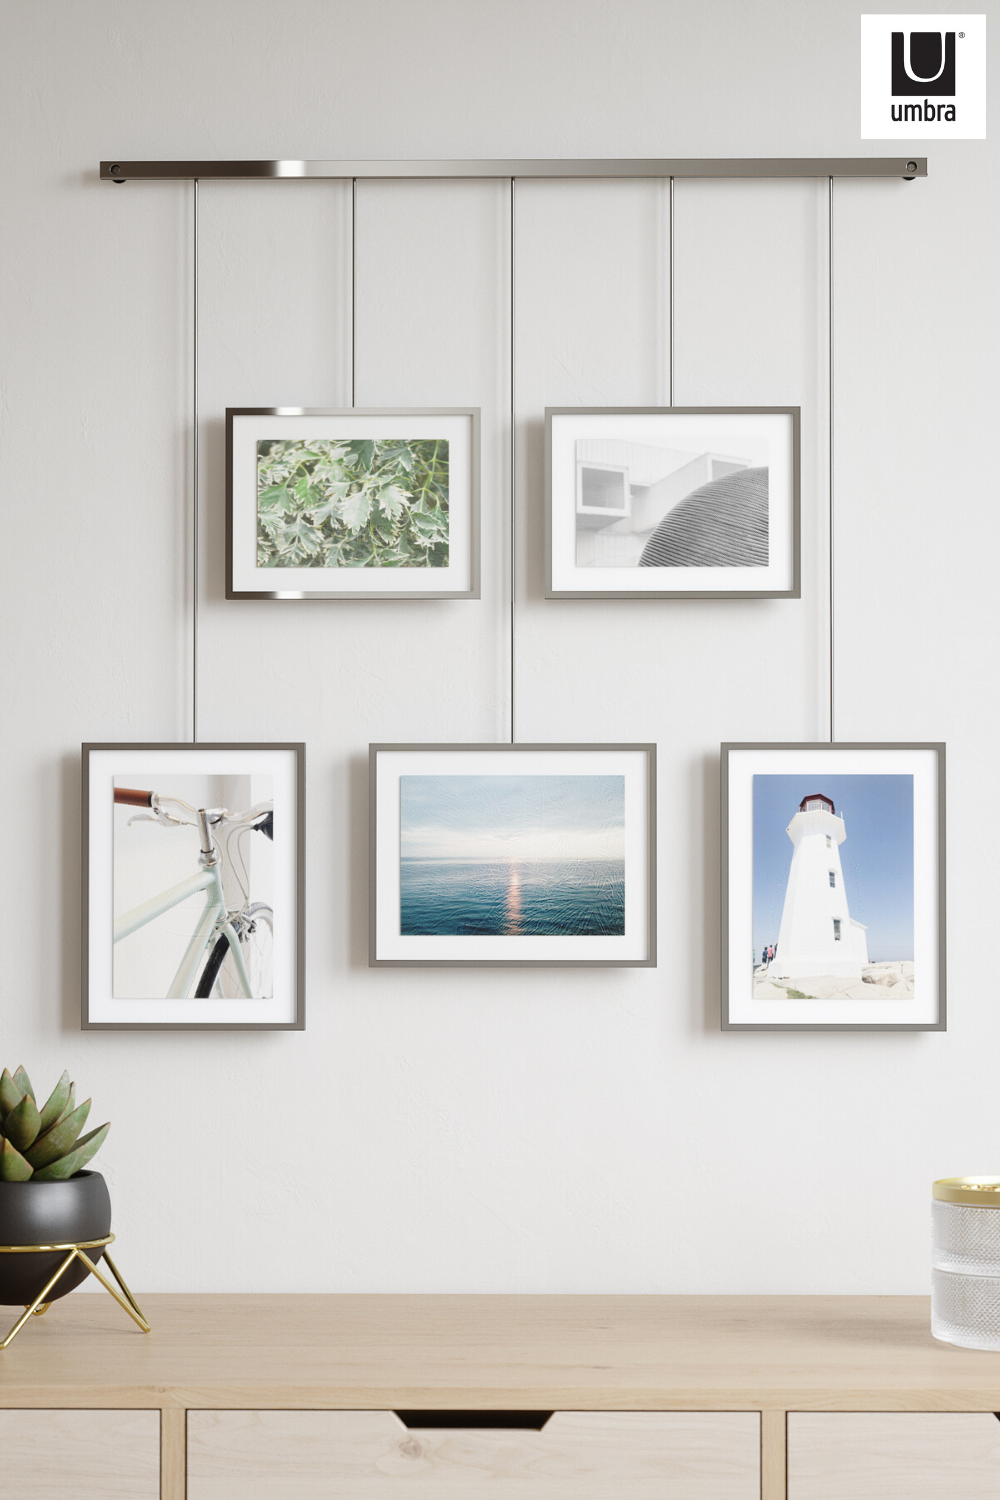 Exhibit Wall Picture Frames Set Of 5 In 2021 Gallery Wall Hanging System Gallery Wall Hanging Photo Wall Display